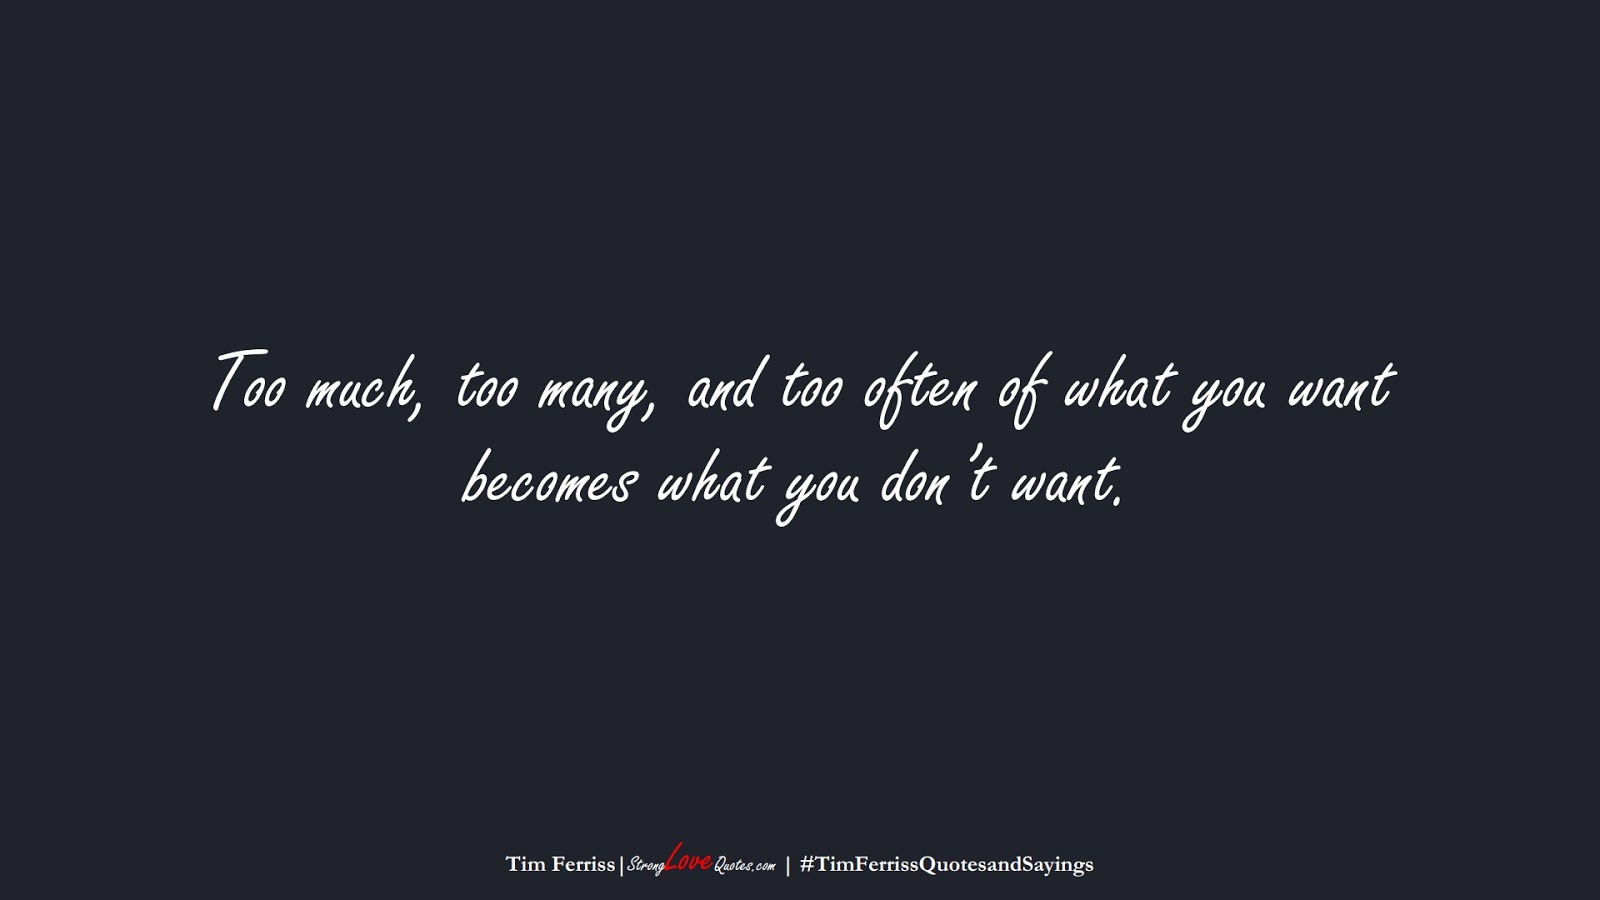 Too much, too many, and too often of what you want becomes what you don't want. (Tim Ferriss);  #TimFerrissQuotesandSayings